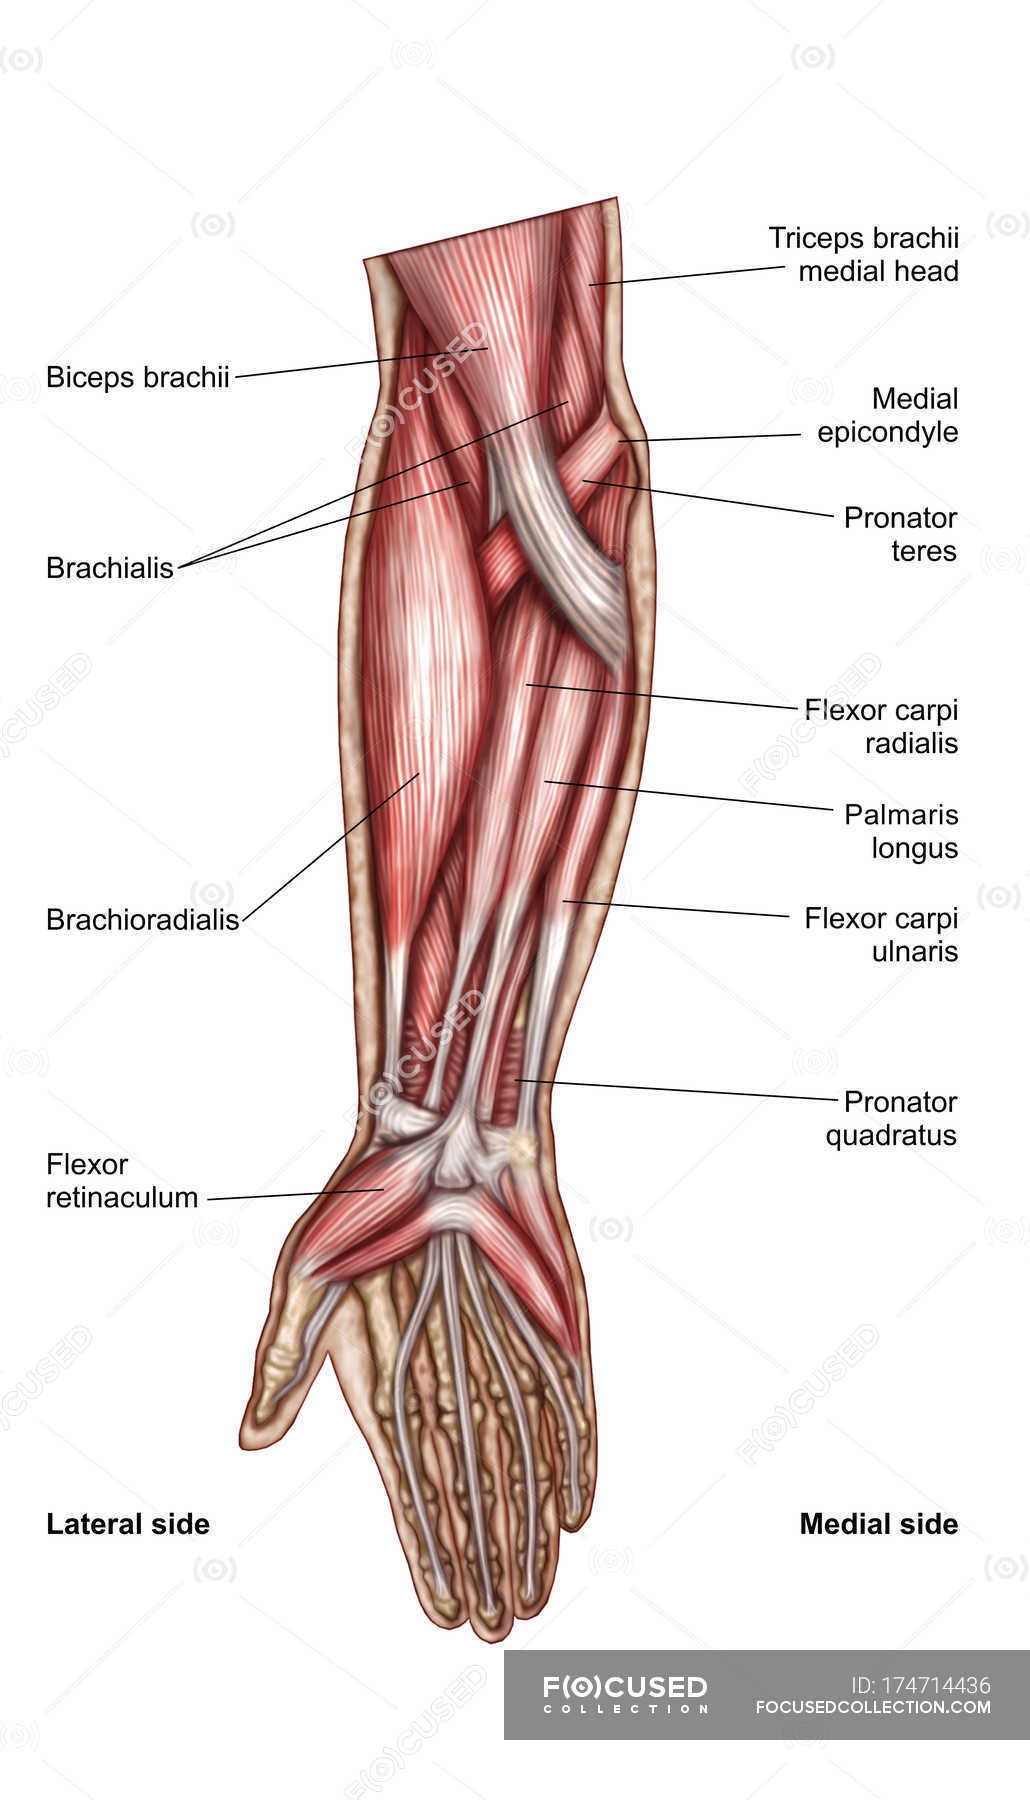 Anatomy of human forearm muscles with labels — Stock Photo | #174714436